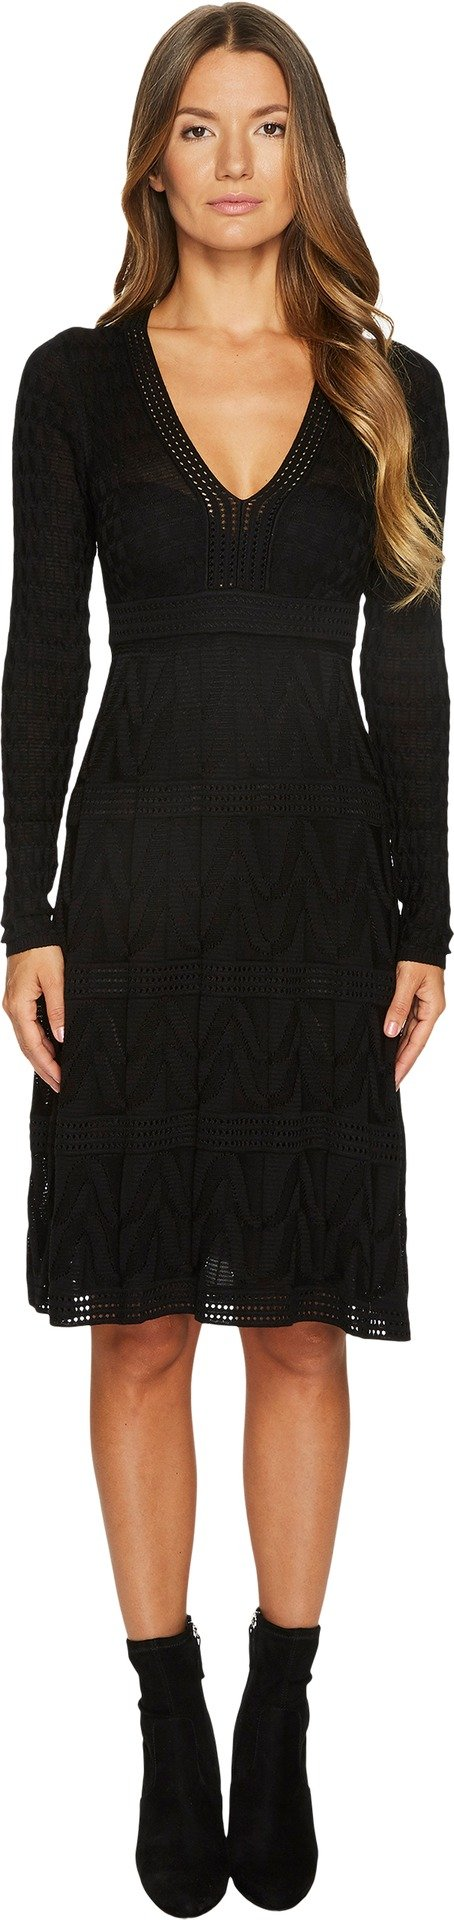 M Missoni Women's Solid Knit V-Neck Dress Black 42 by M Missoni